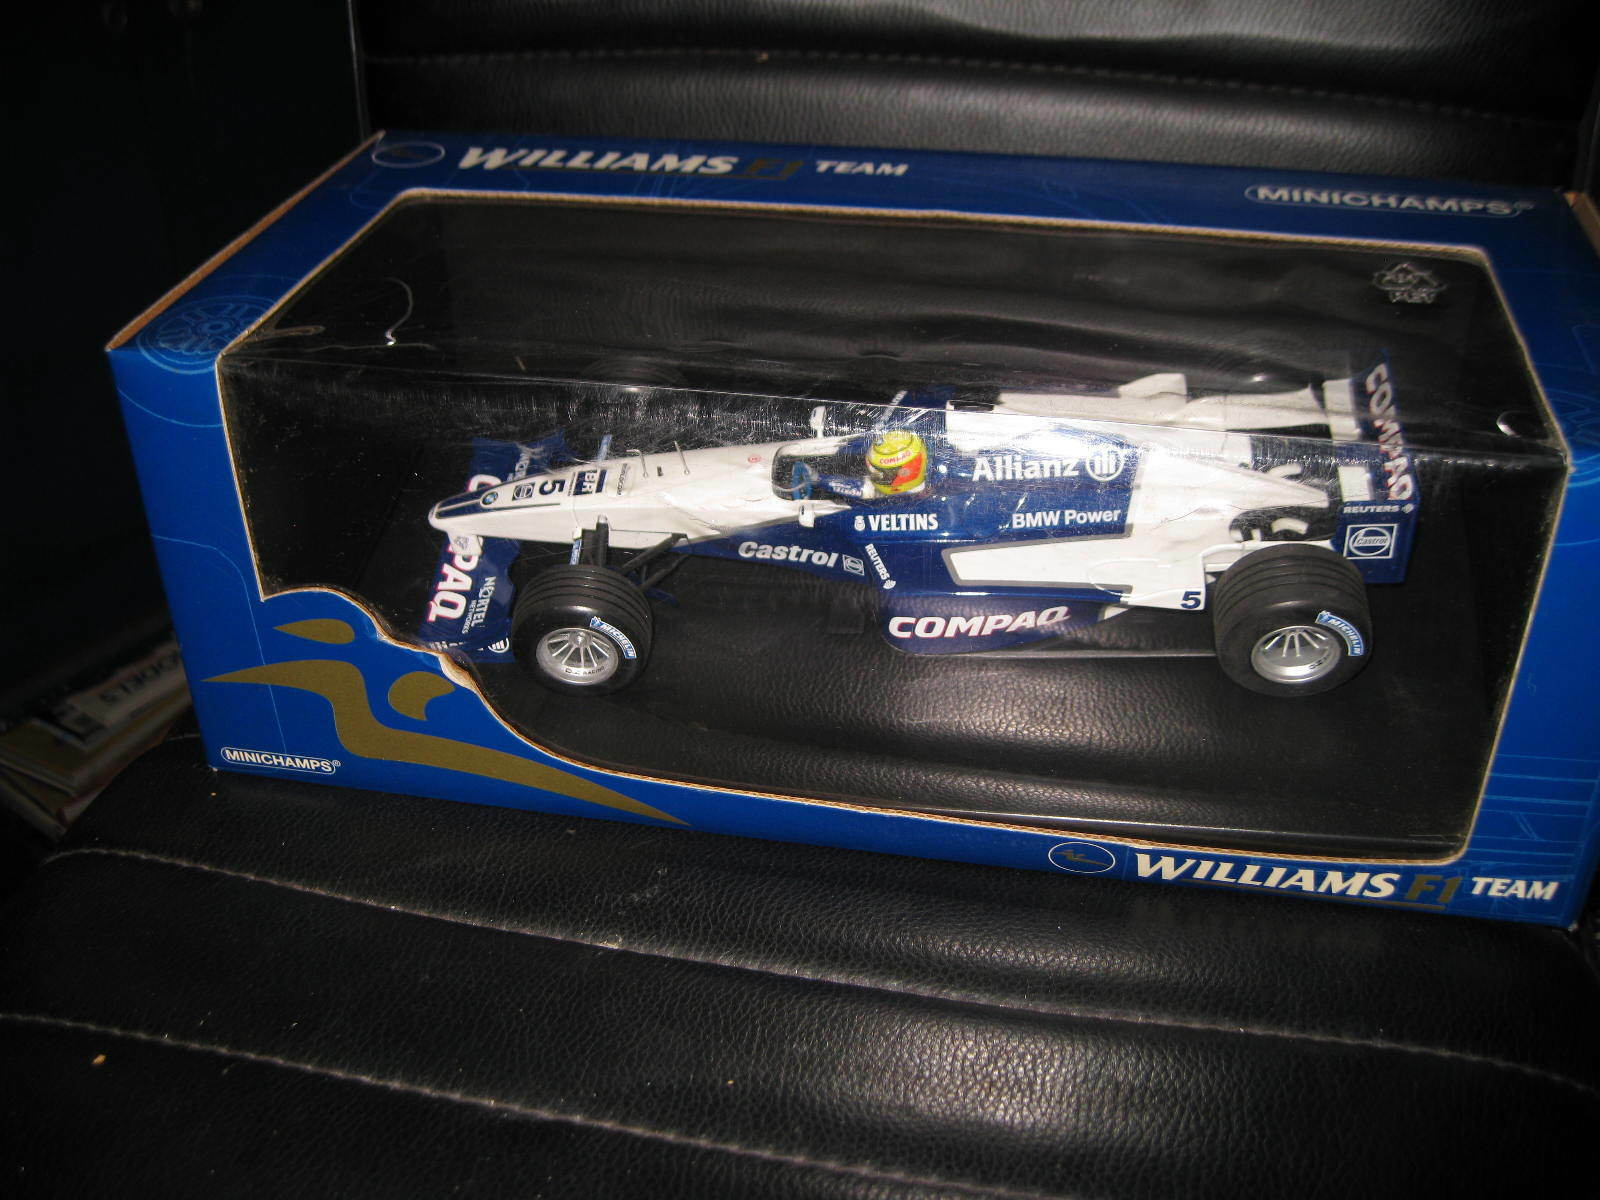 MINICHAMPS 1 18 F1 WILLIAMS F1 TEAM BMW FW22 RALF SCHUMACHER 2001 SHOW CAR  5